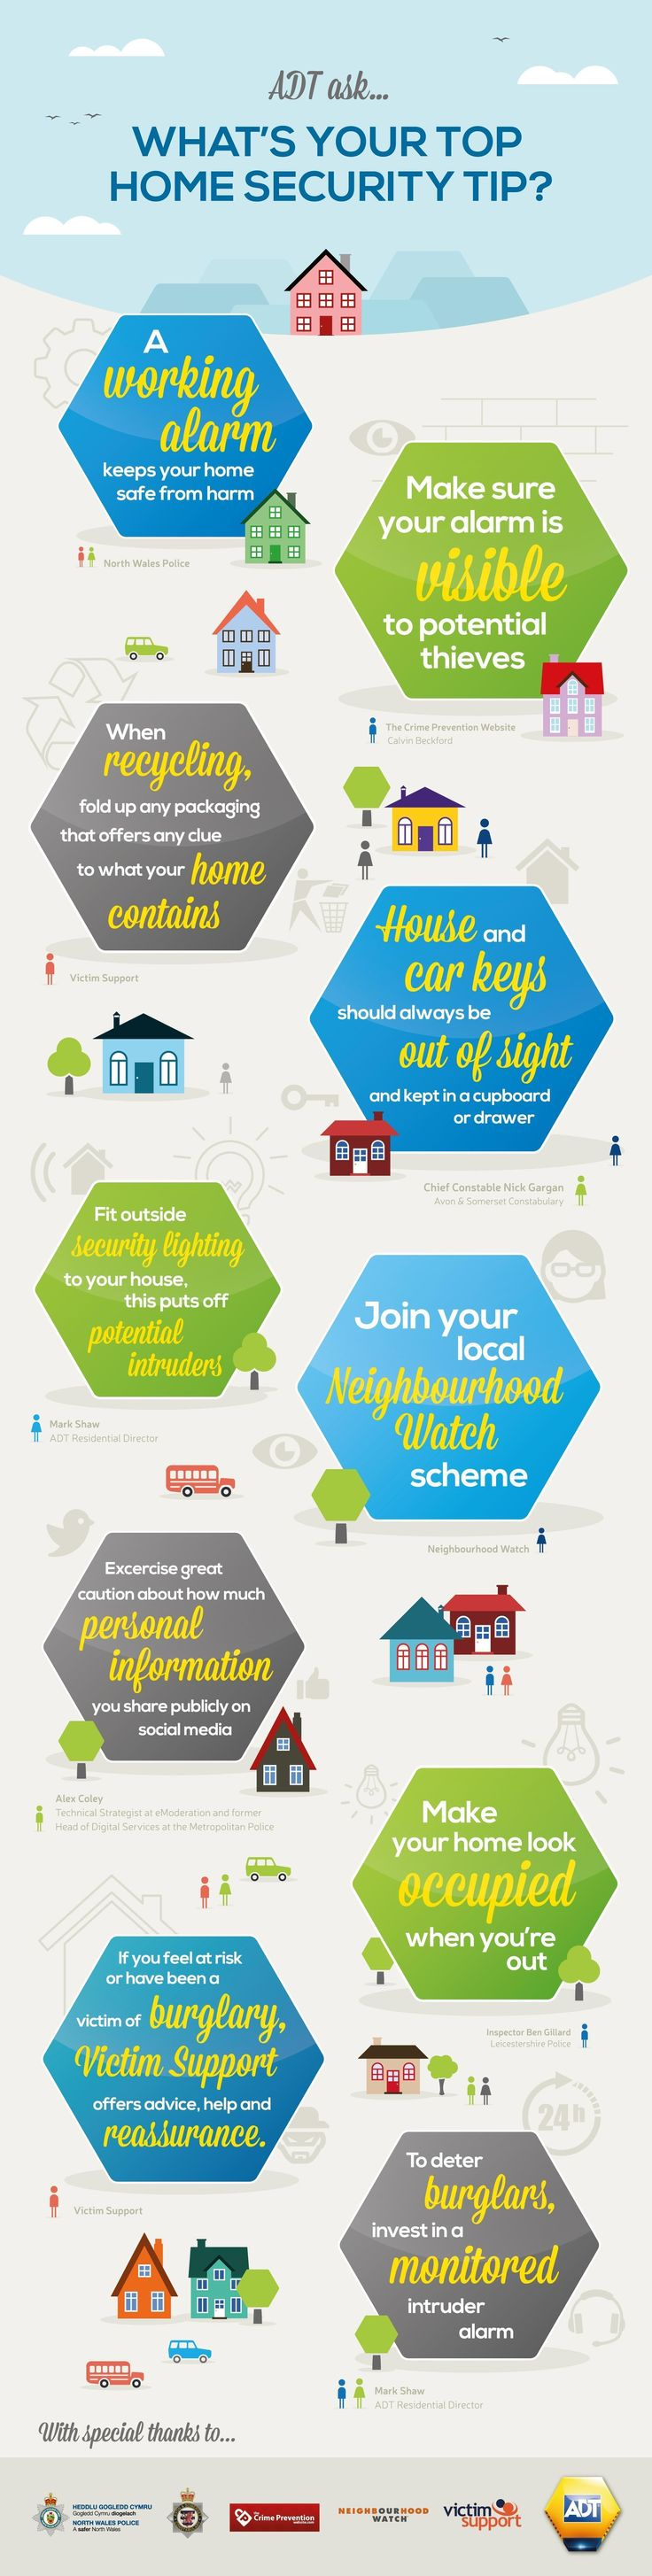 ADT ask security experts: what's your top home security tip? http://www.adt.co.uk/whats-your-top-home-security-tip #homesecurity #homesecuritytips